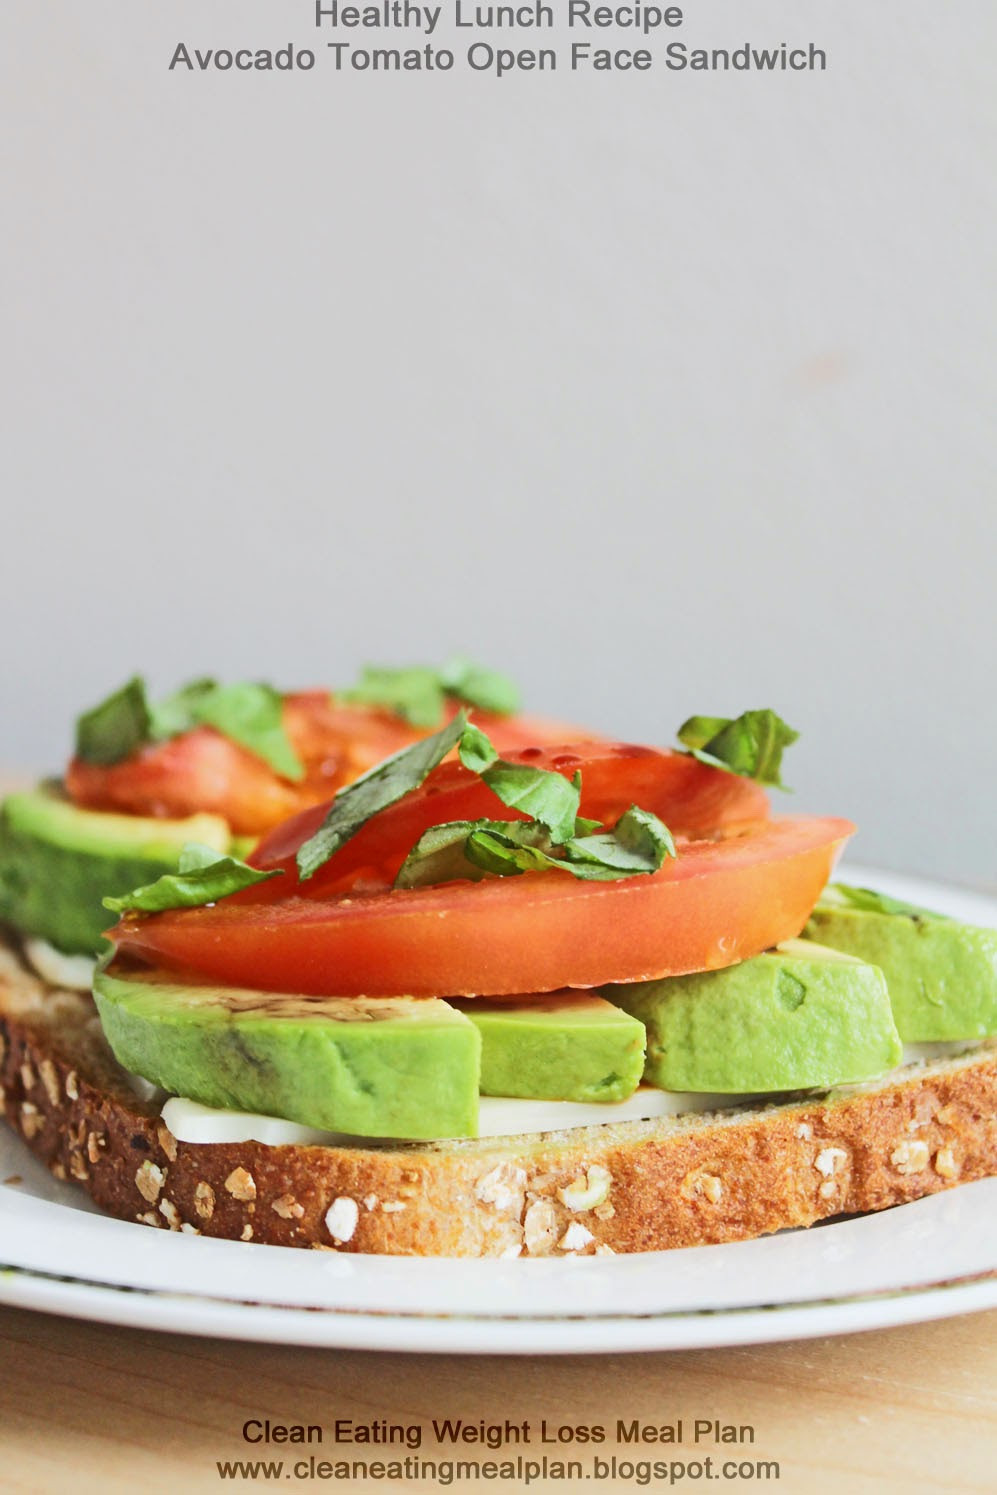 Healthy Sandwich Recipes For Weight Loss  Healthy Lunch Recipe Avocado Tomato Open Face Sandwich